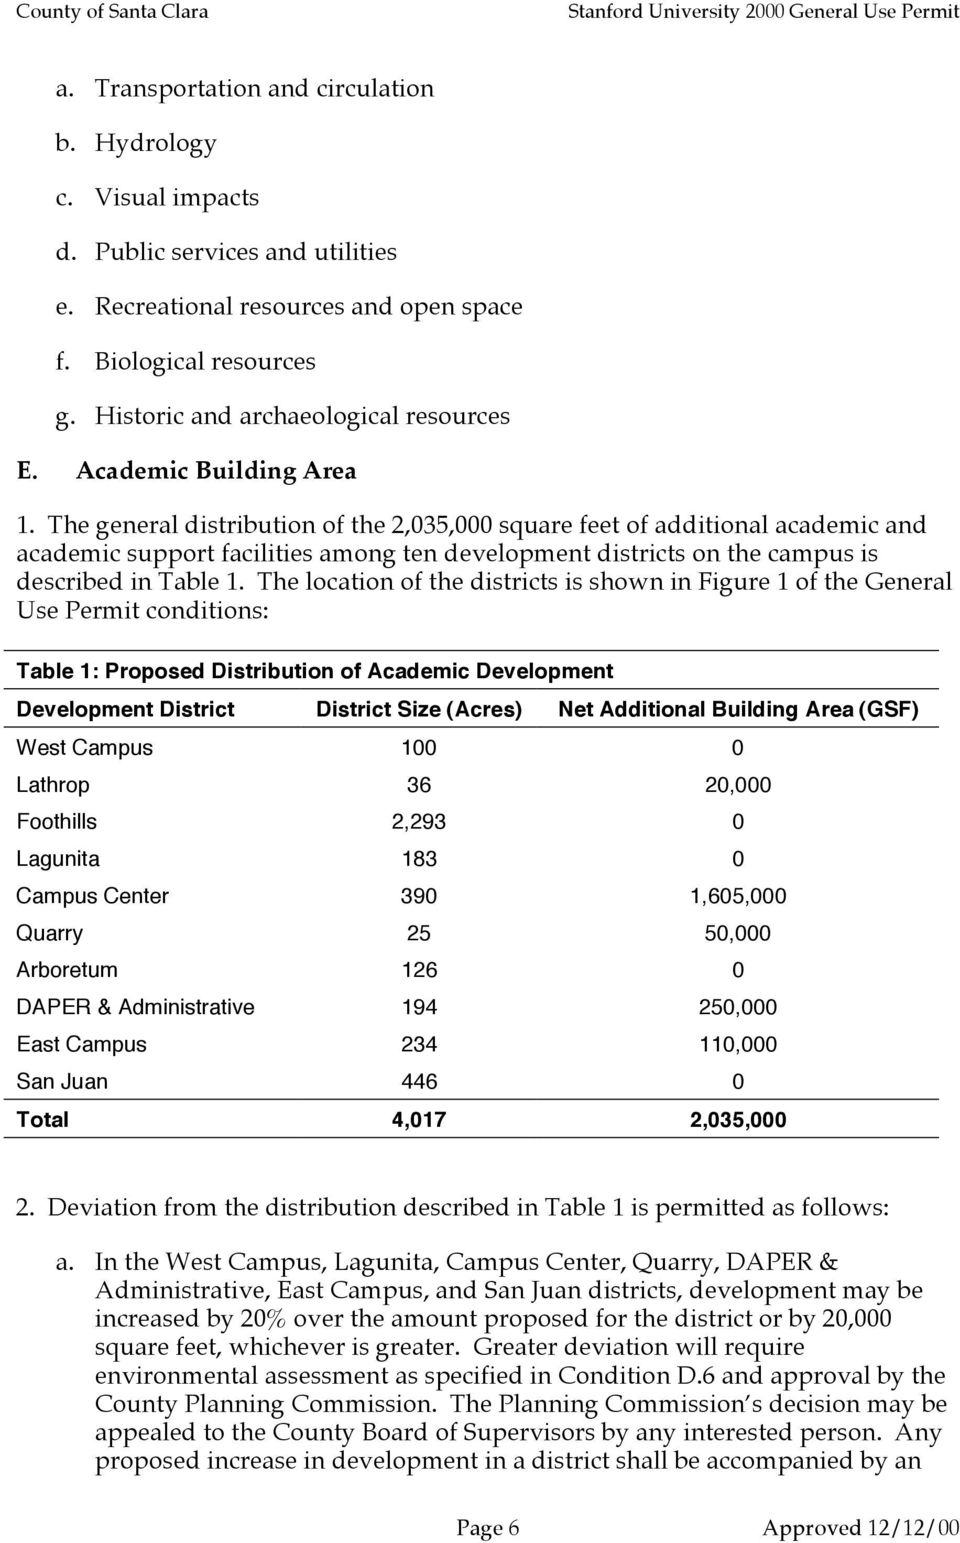 The general distribution of the 2,035,000 square feet of additional academic and academic support facilities among ten development districts on the campus is described in Table 1.